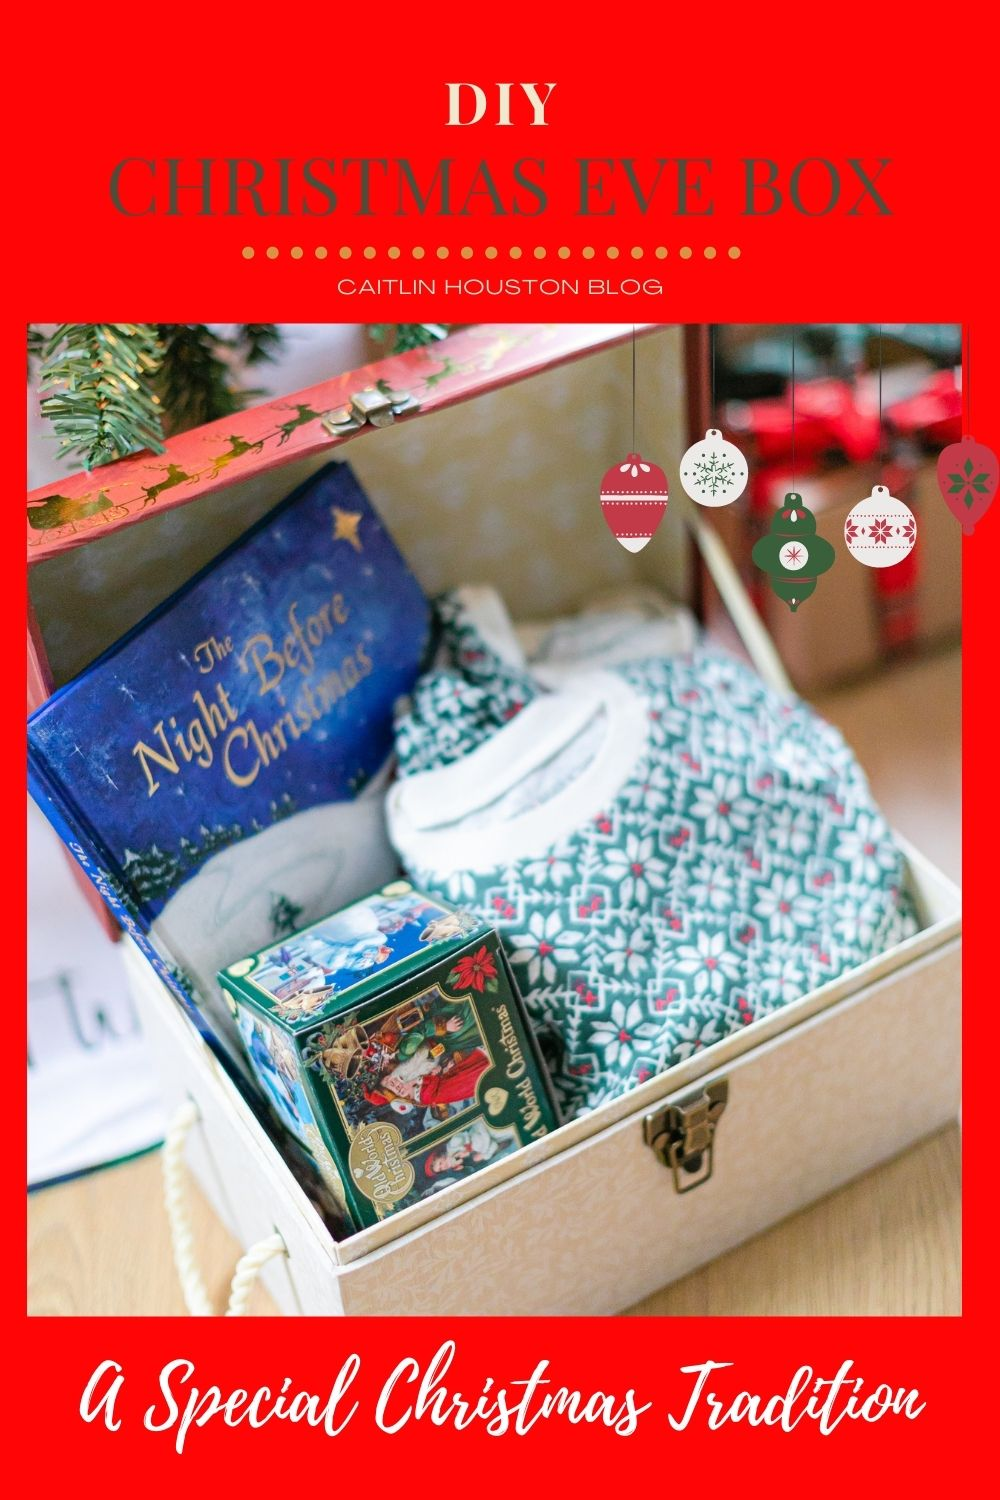 Christmas Eve Box - Instructions on how to put together a special gift for children on Christmas Eve